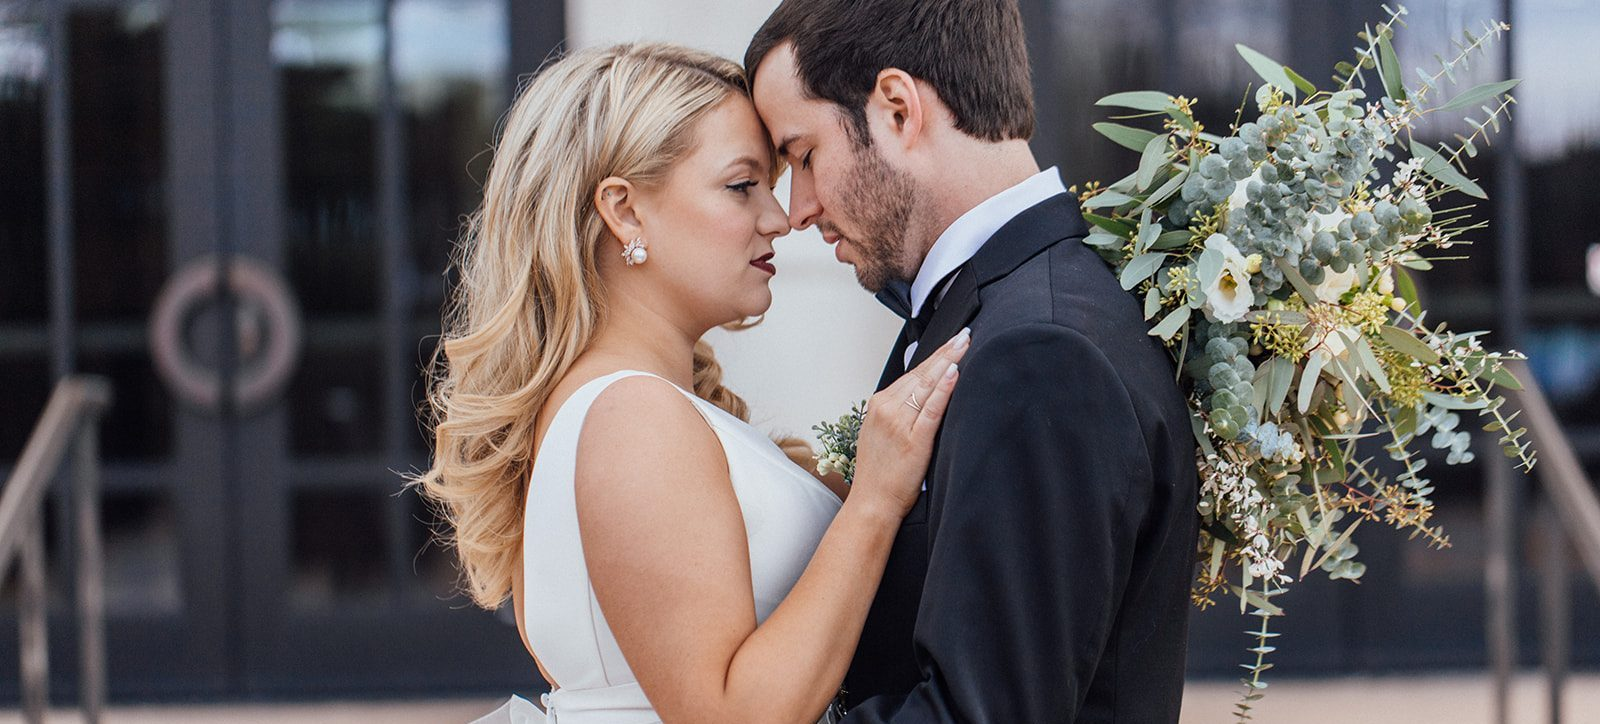 Wedding day kiss with garden and gathered bridal bouquet